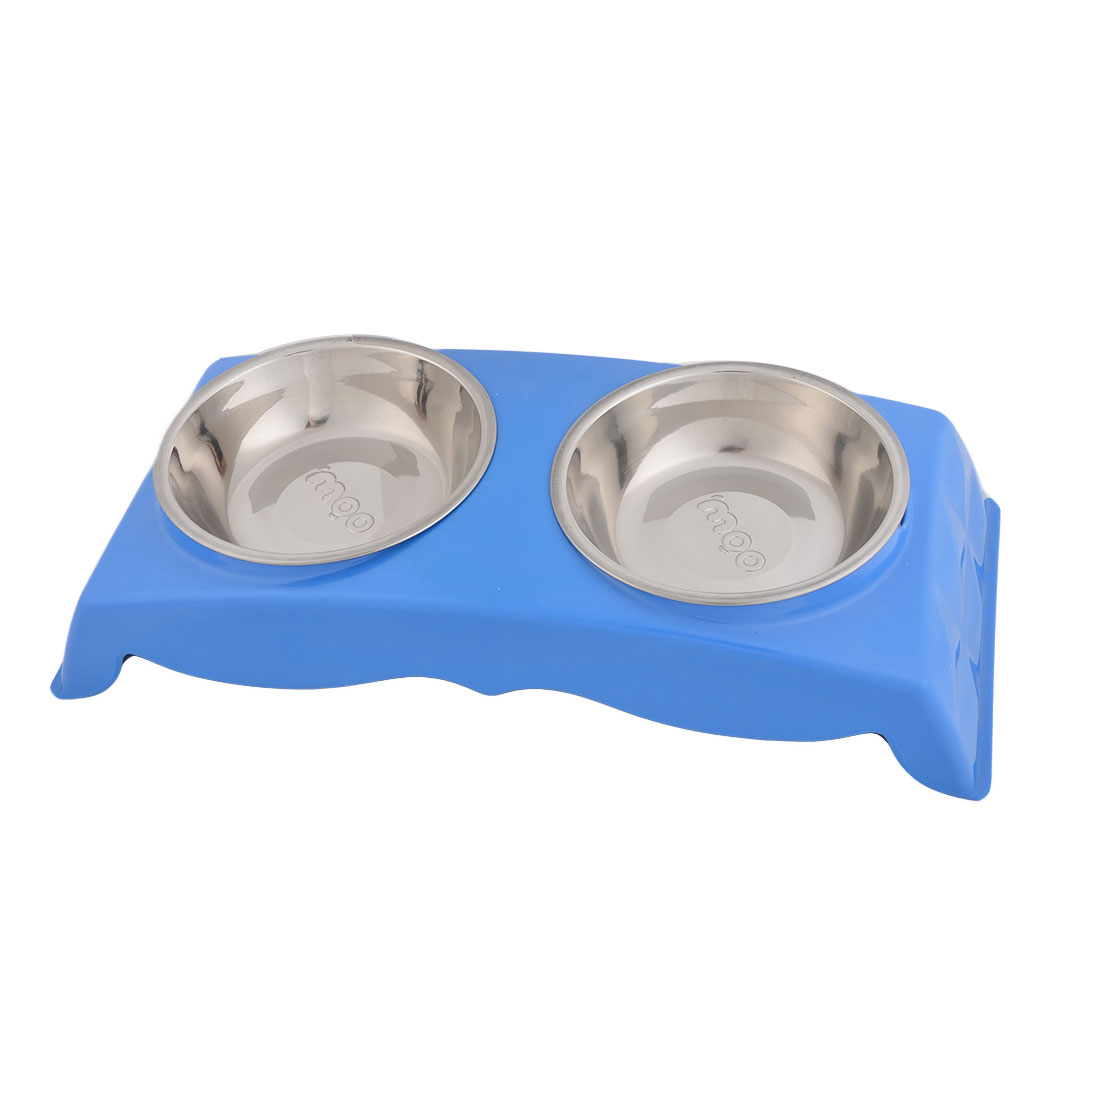 Home Metal Double Bowl Design Puppy Dog Pet Dinner Food Water Feeder Basin Blue